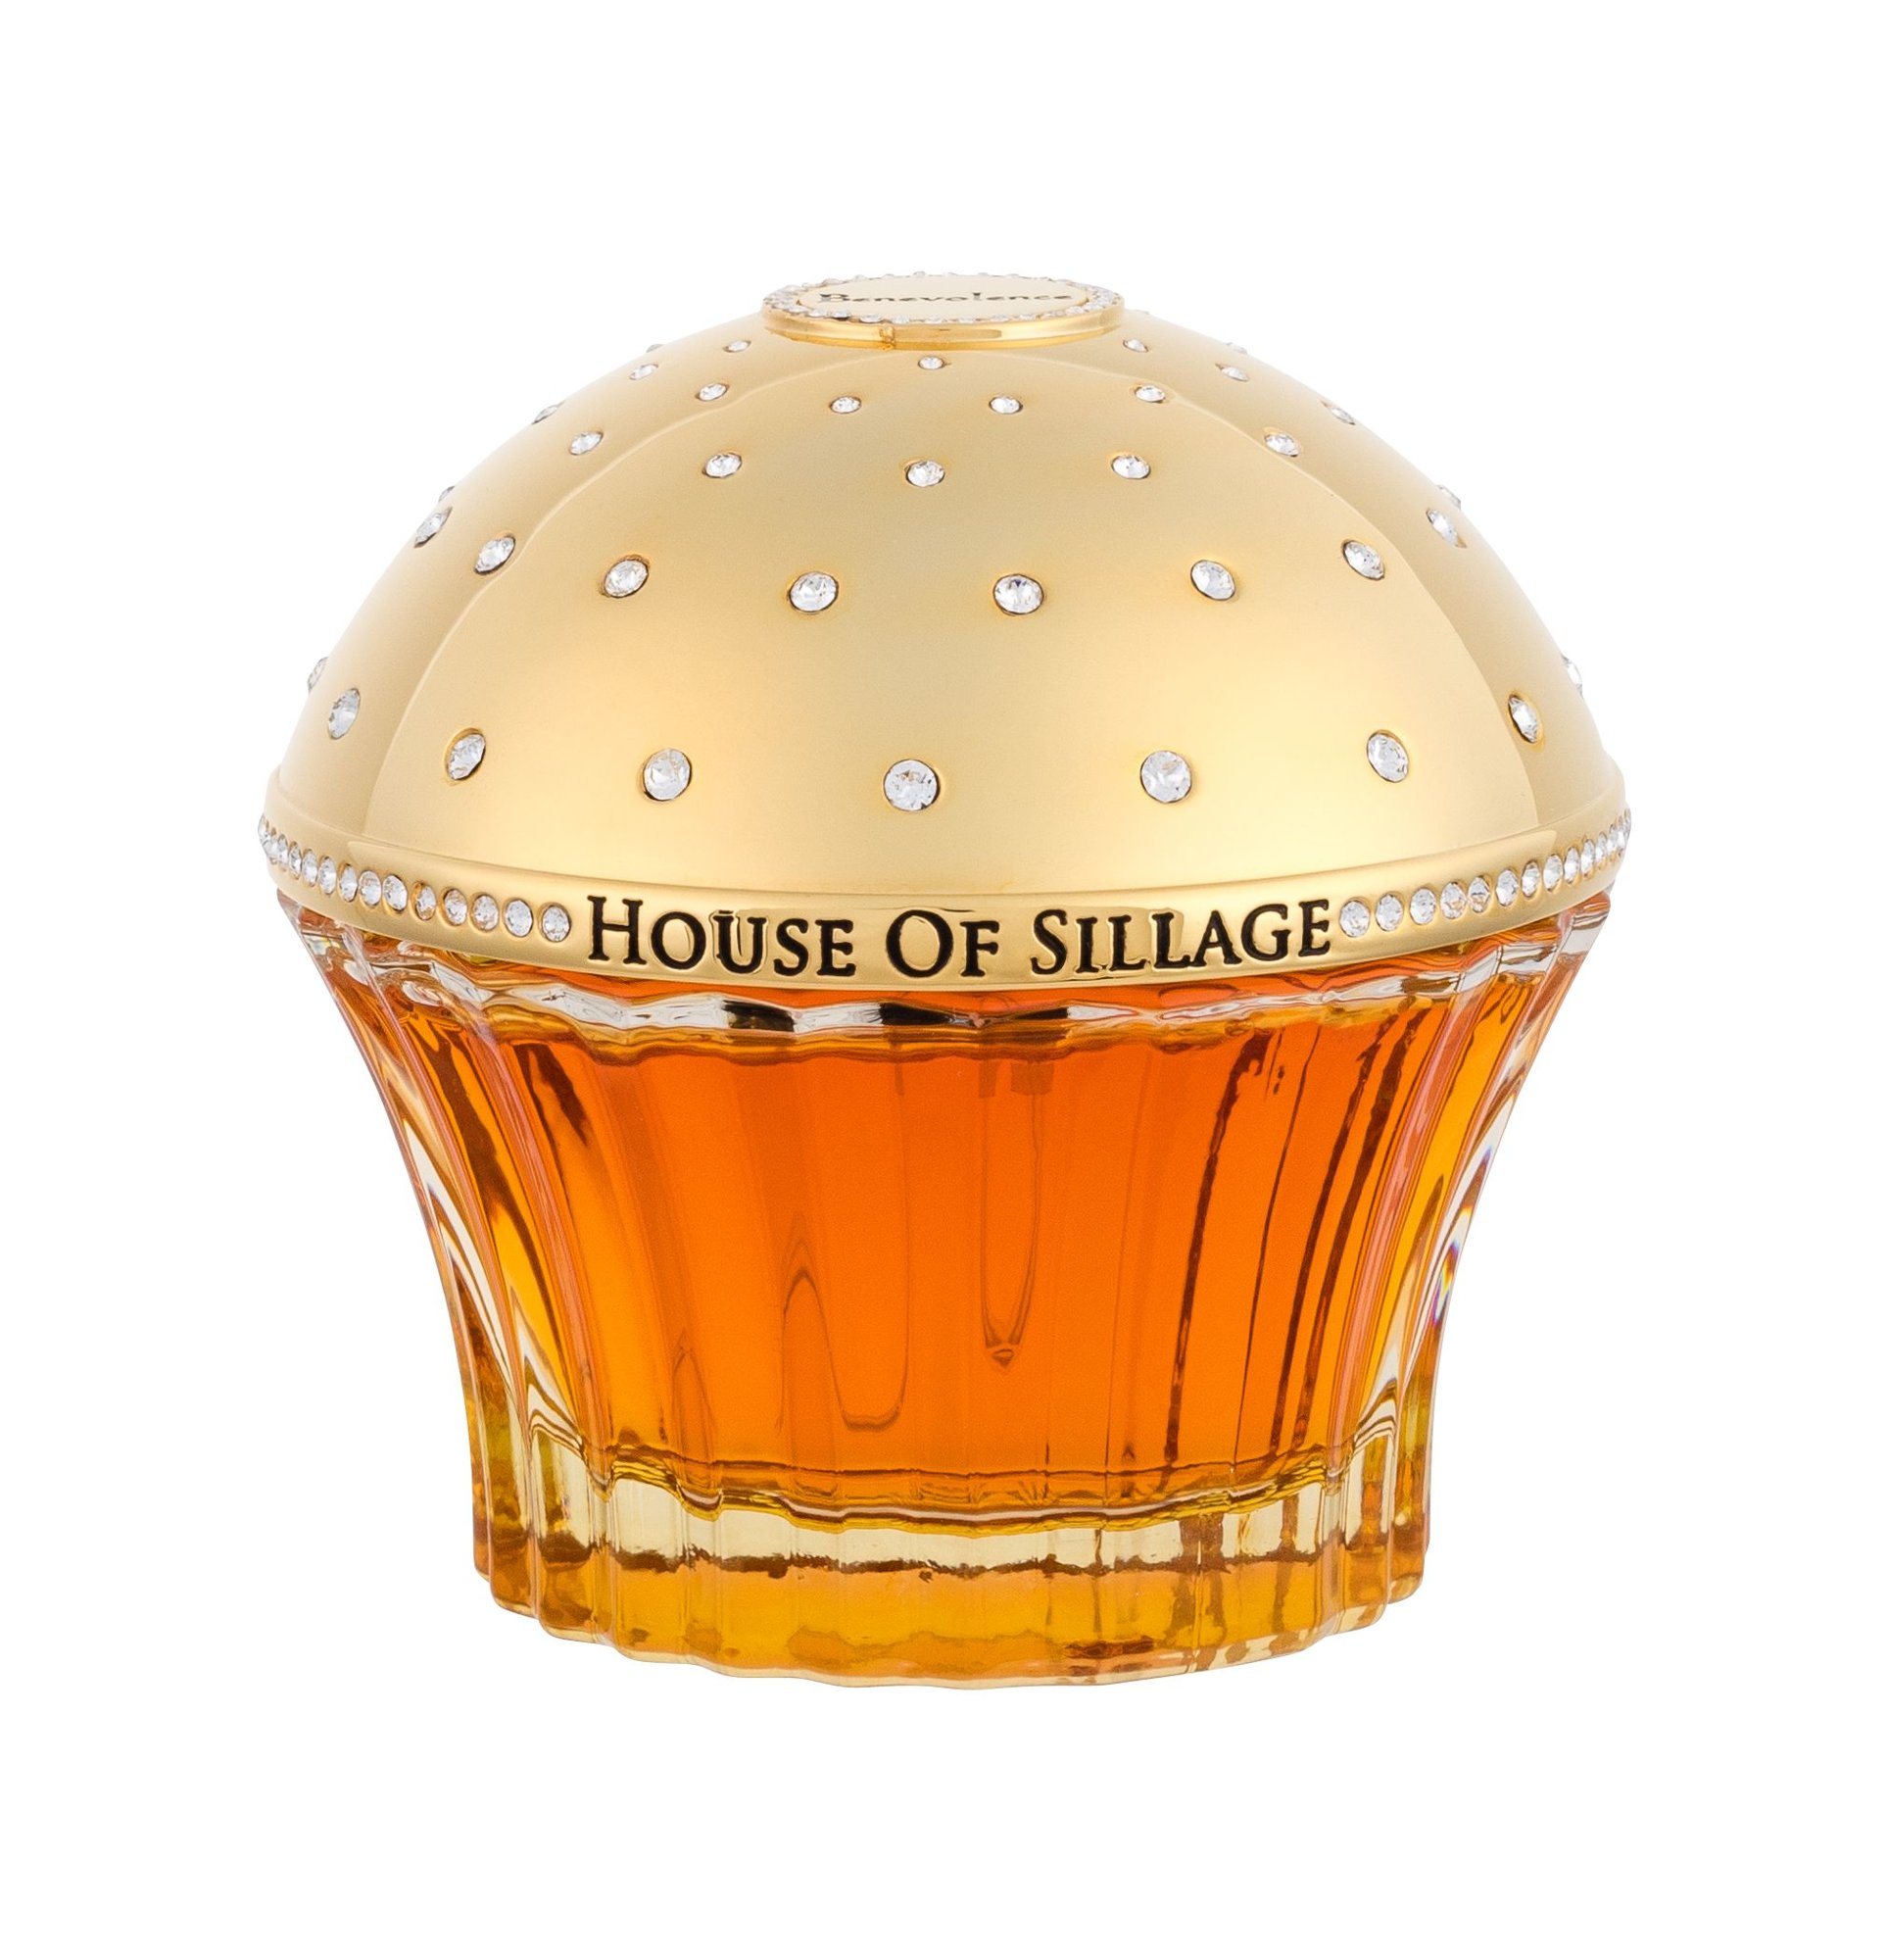 House of Sillage Signature Collection Benevolence Perfume 75ml